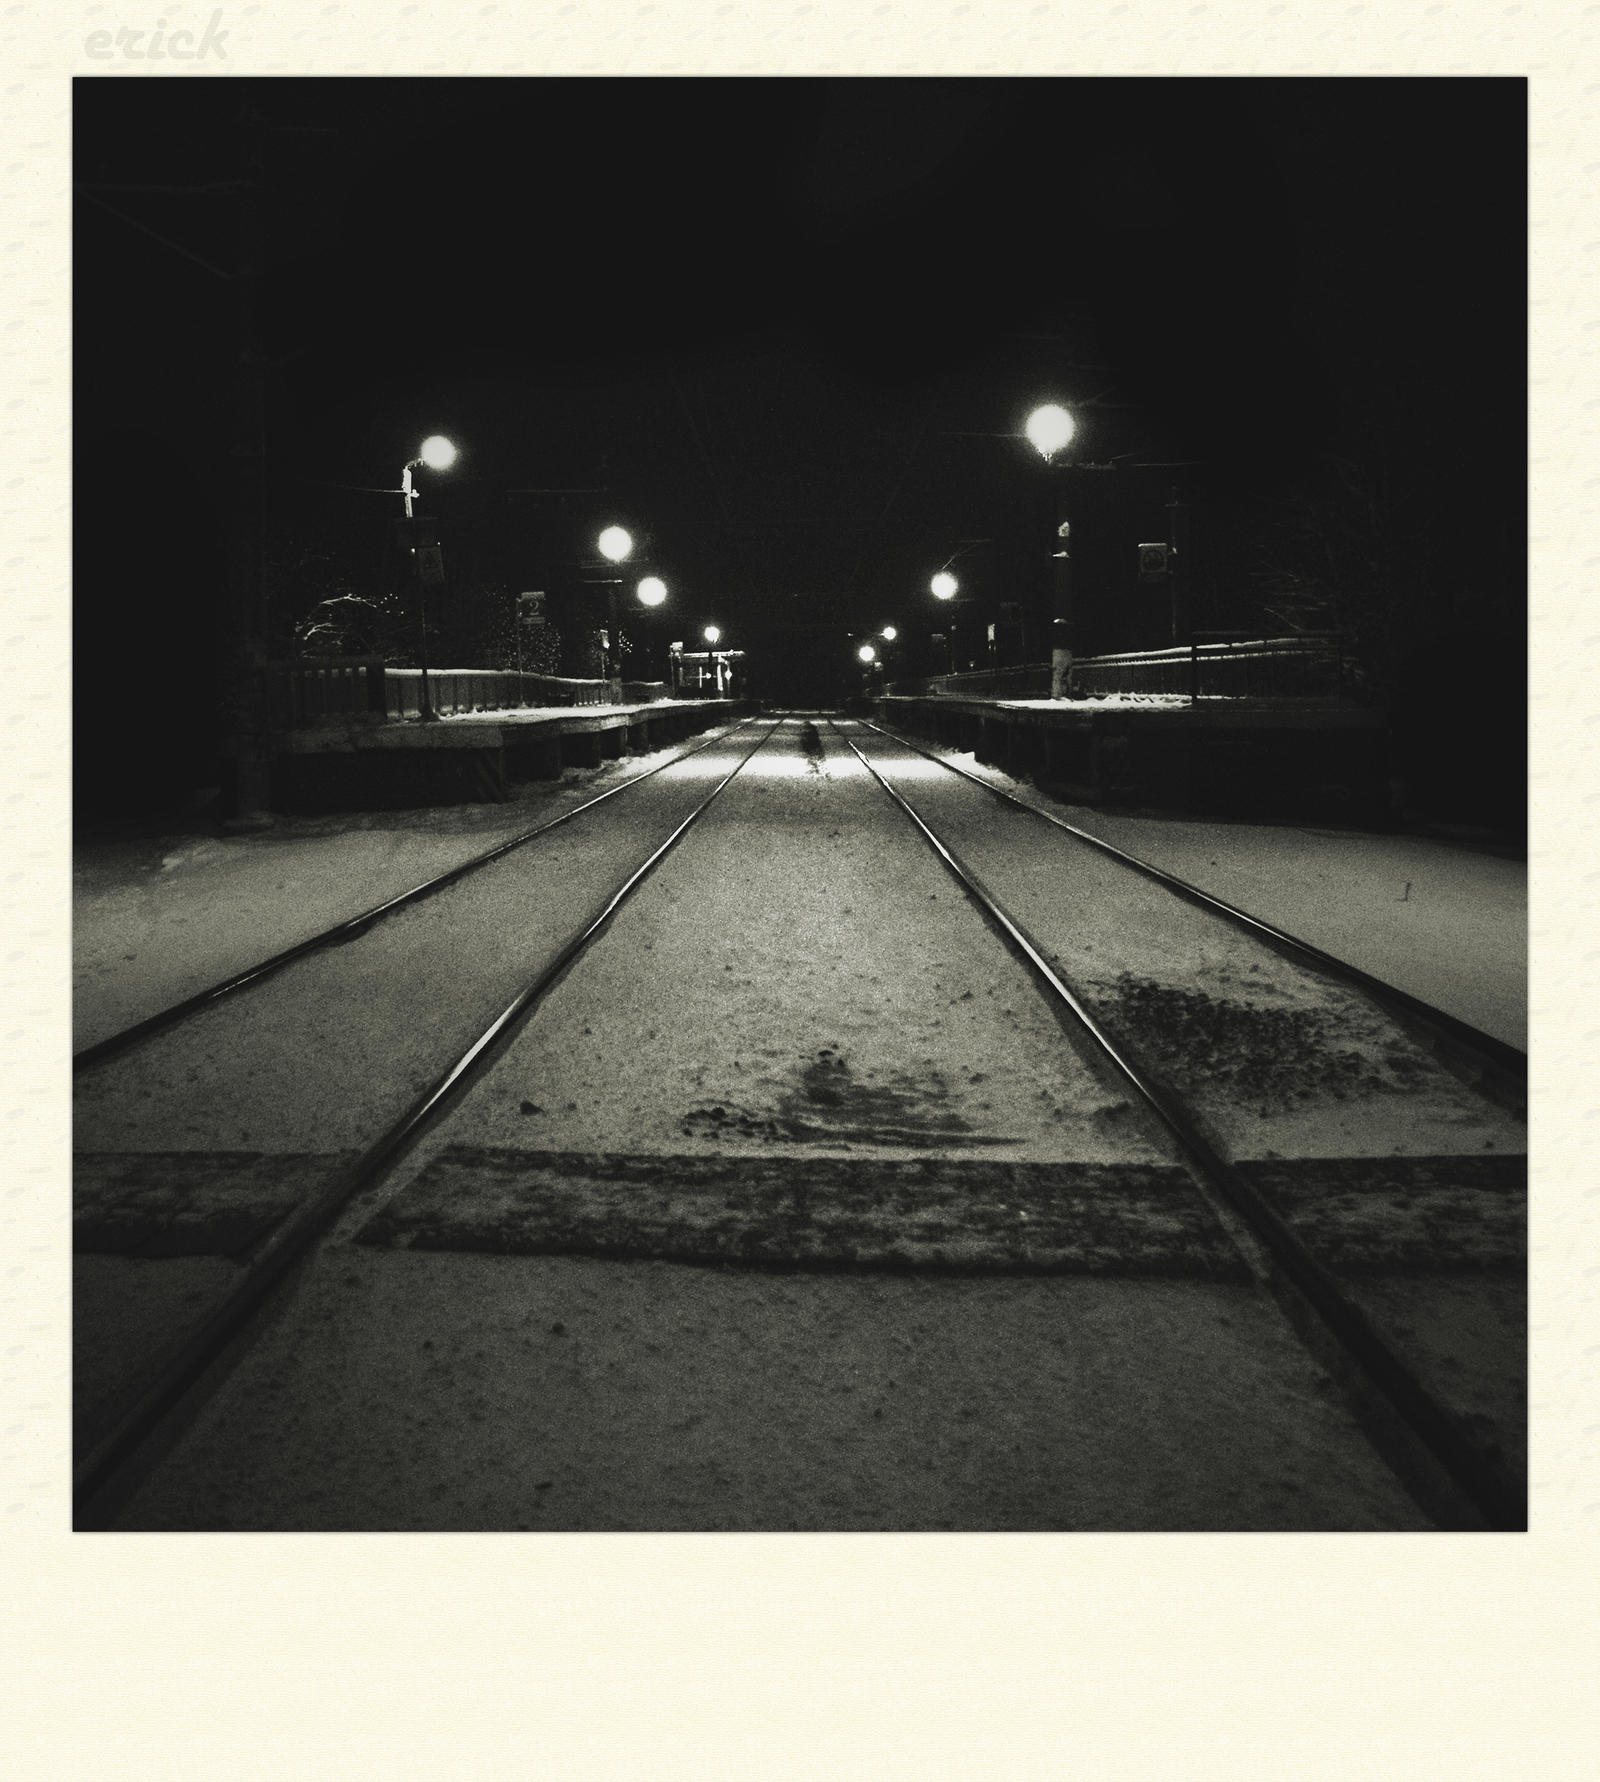 Infinity way on railroad by erakli